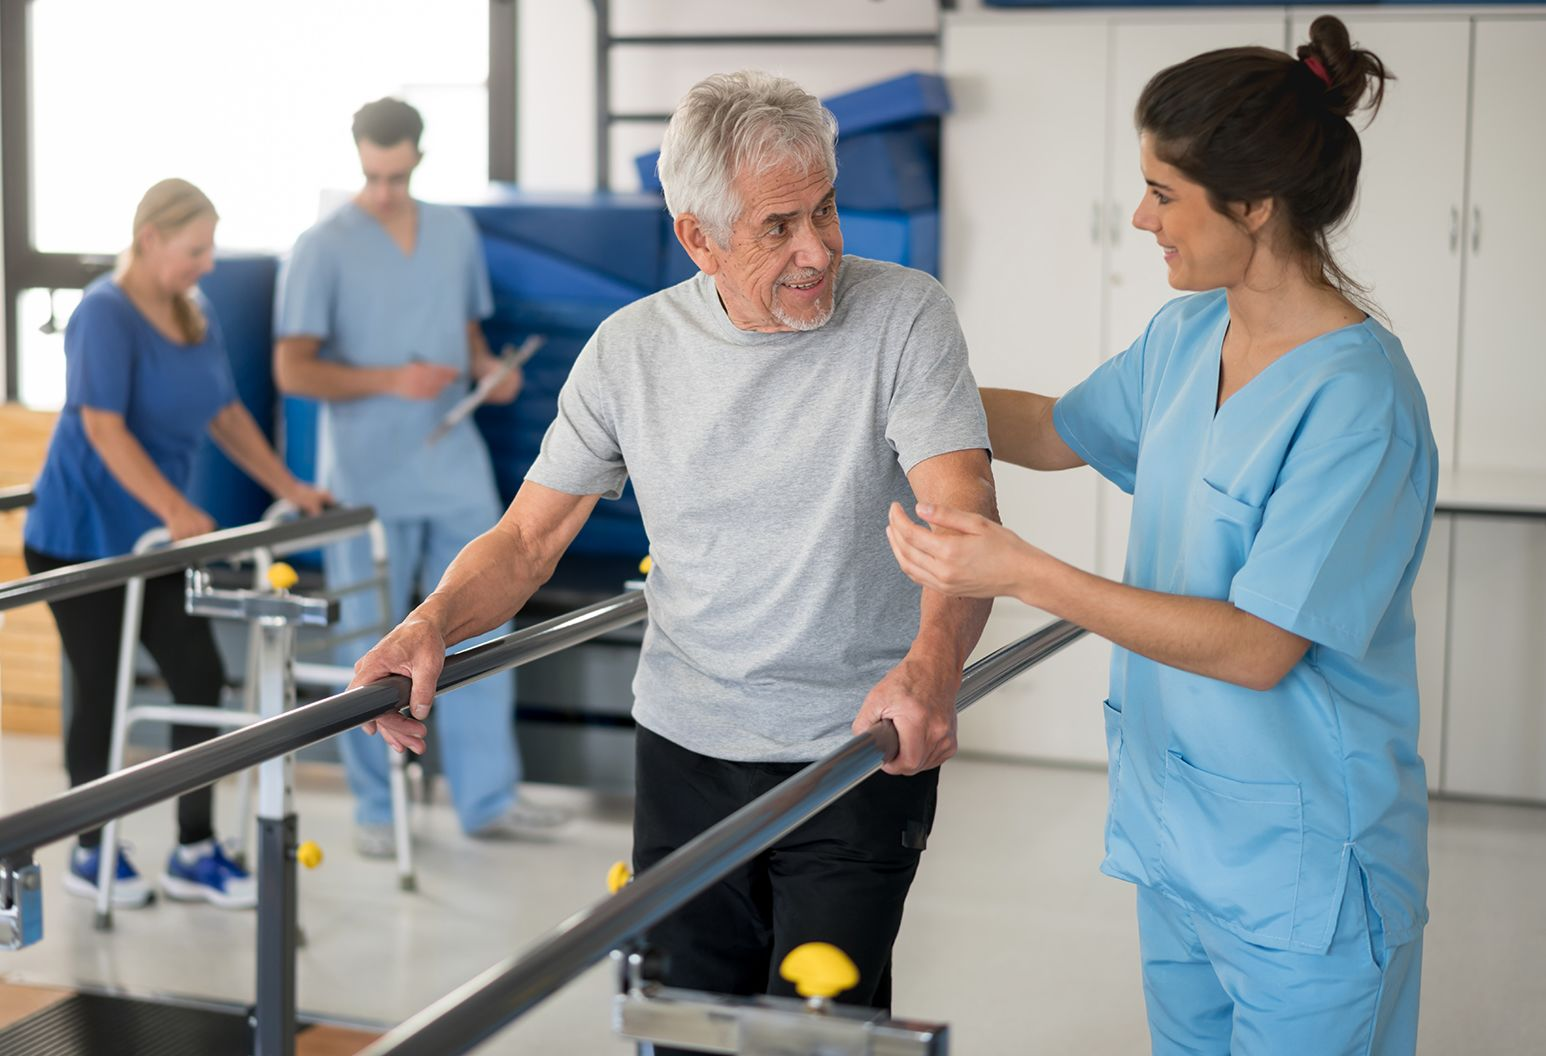 Cheerful senior man using parallel bars to walk and physiotherapist smiling at him very happy while another patient and professional are walking at the background